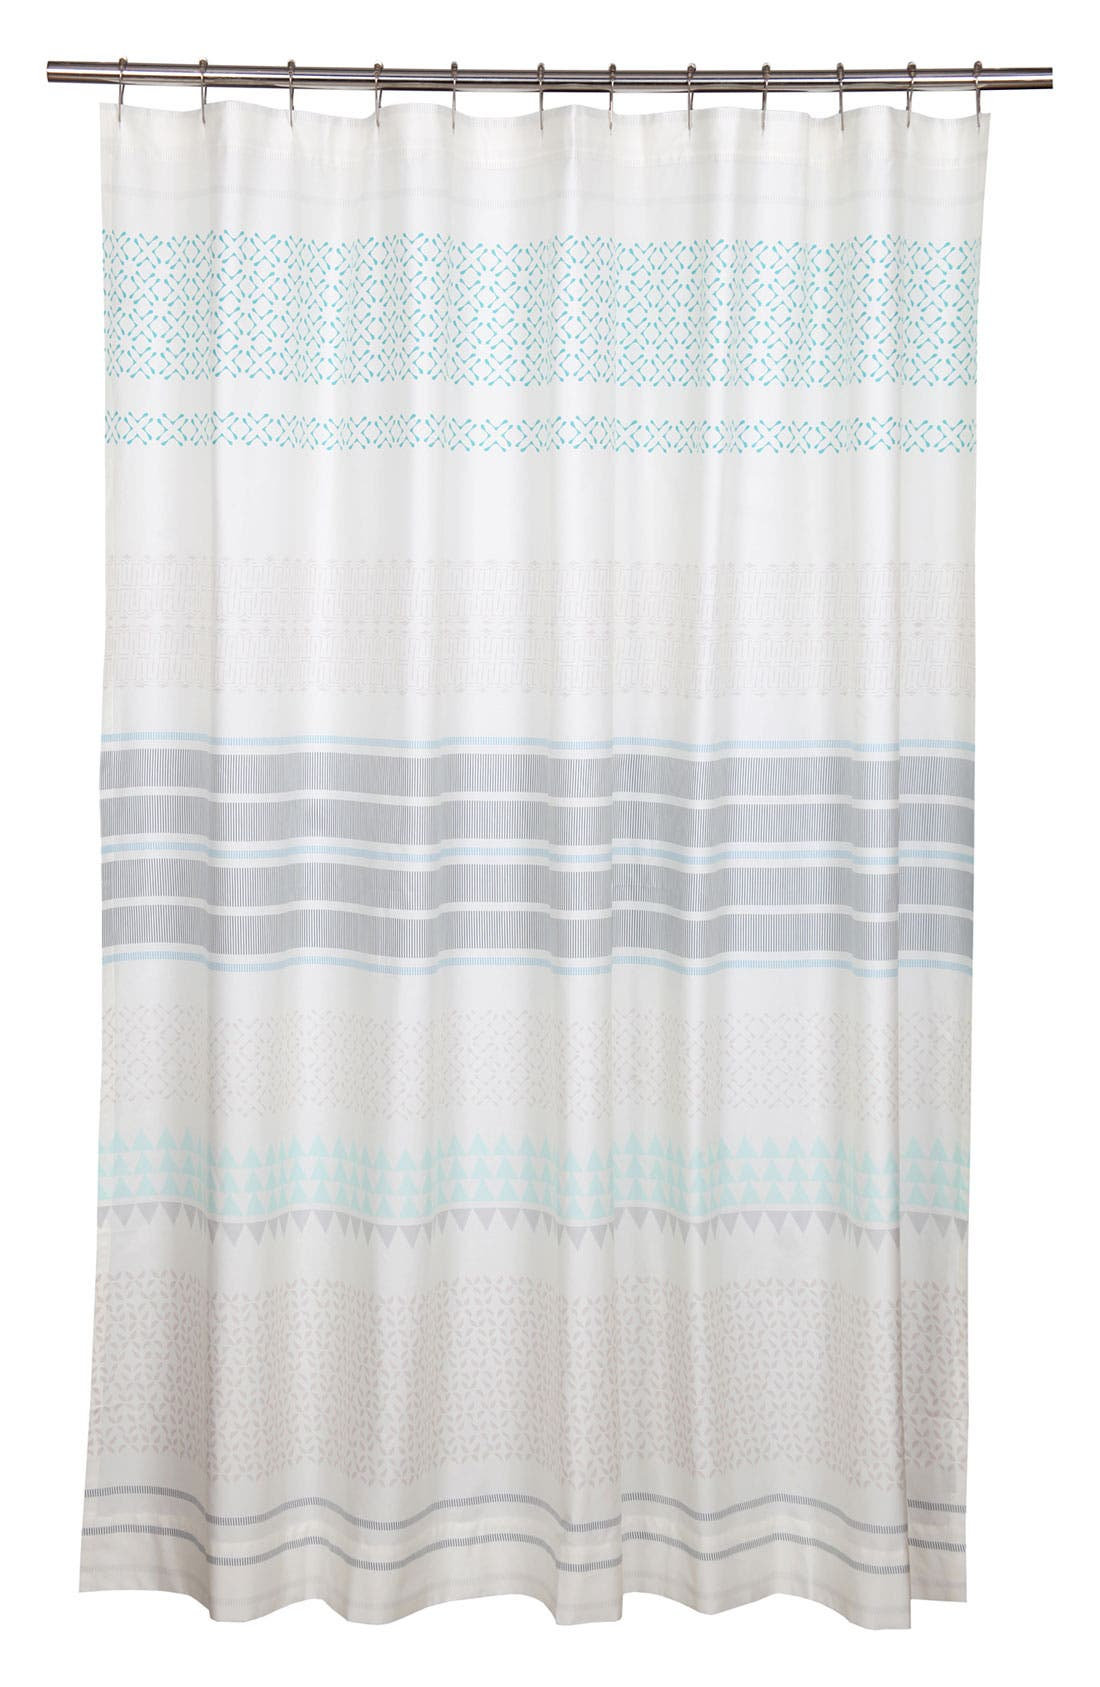 Main Image - Blissliving Home 'Mataveri' Shower Curtain (Online Only)